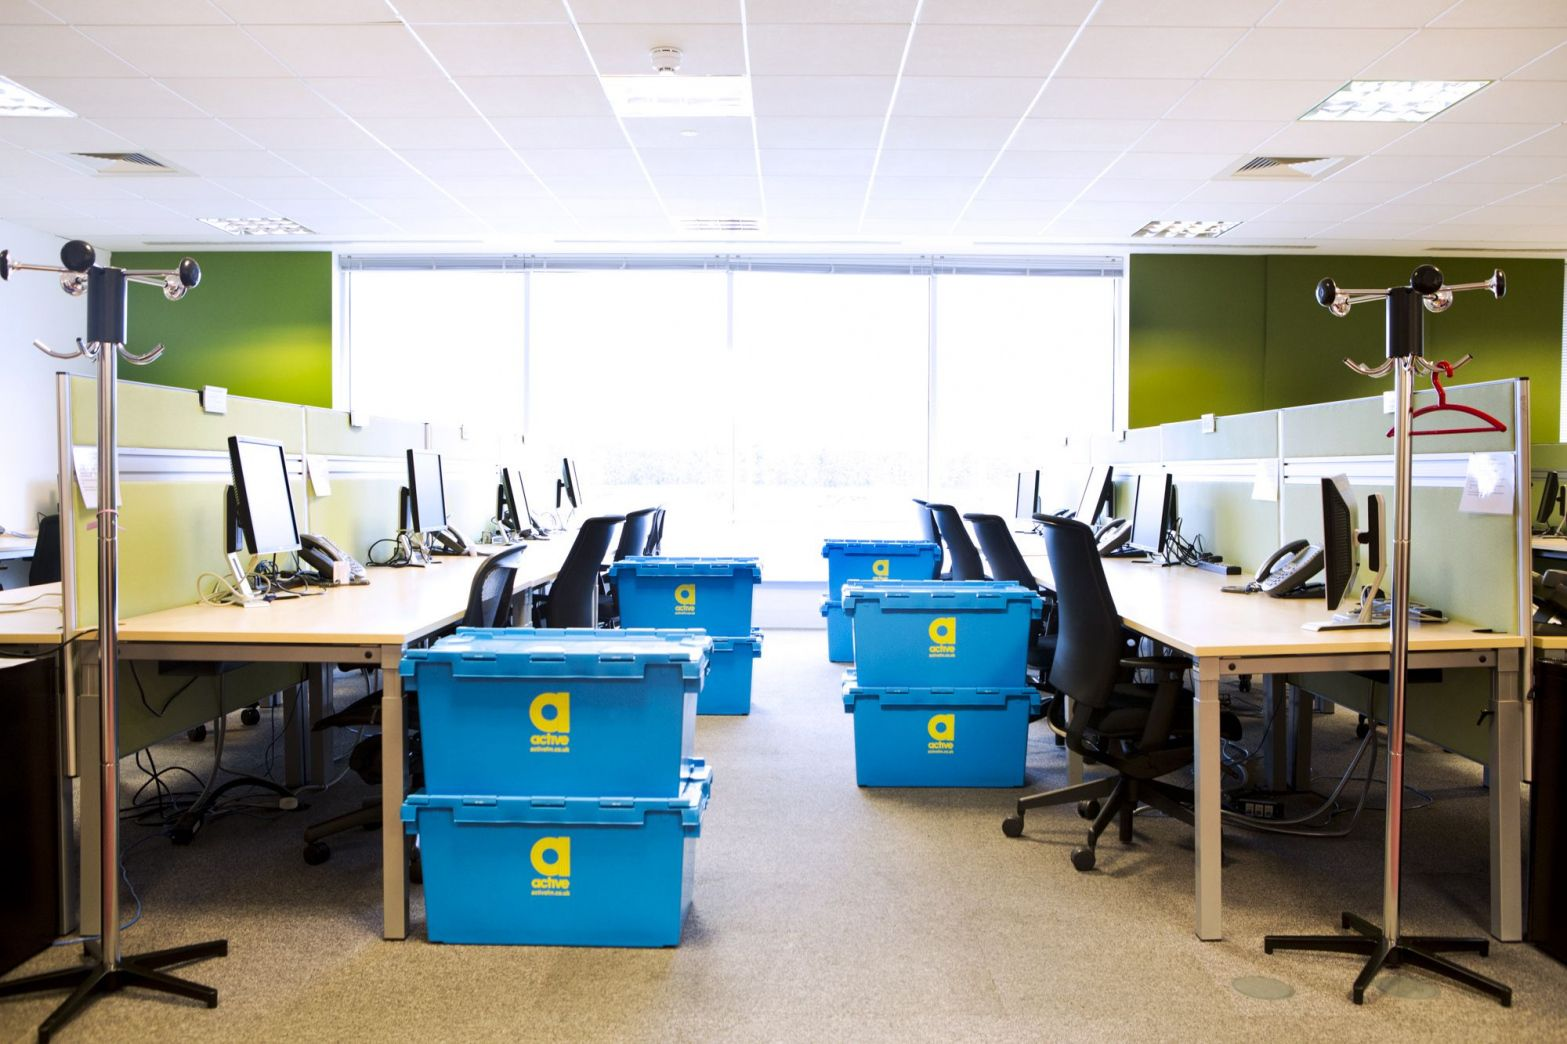 sustainable office furniture. 2019 Sustainable Office Chairs - Modern Home Furniture Check More At Http:// L